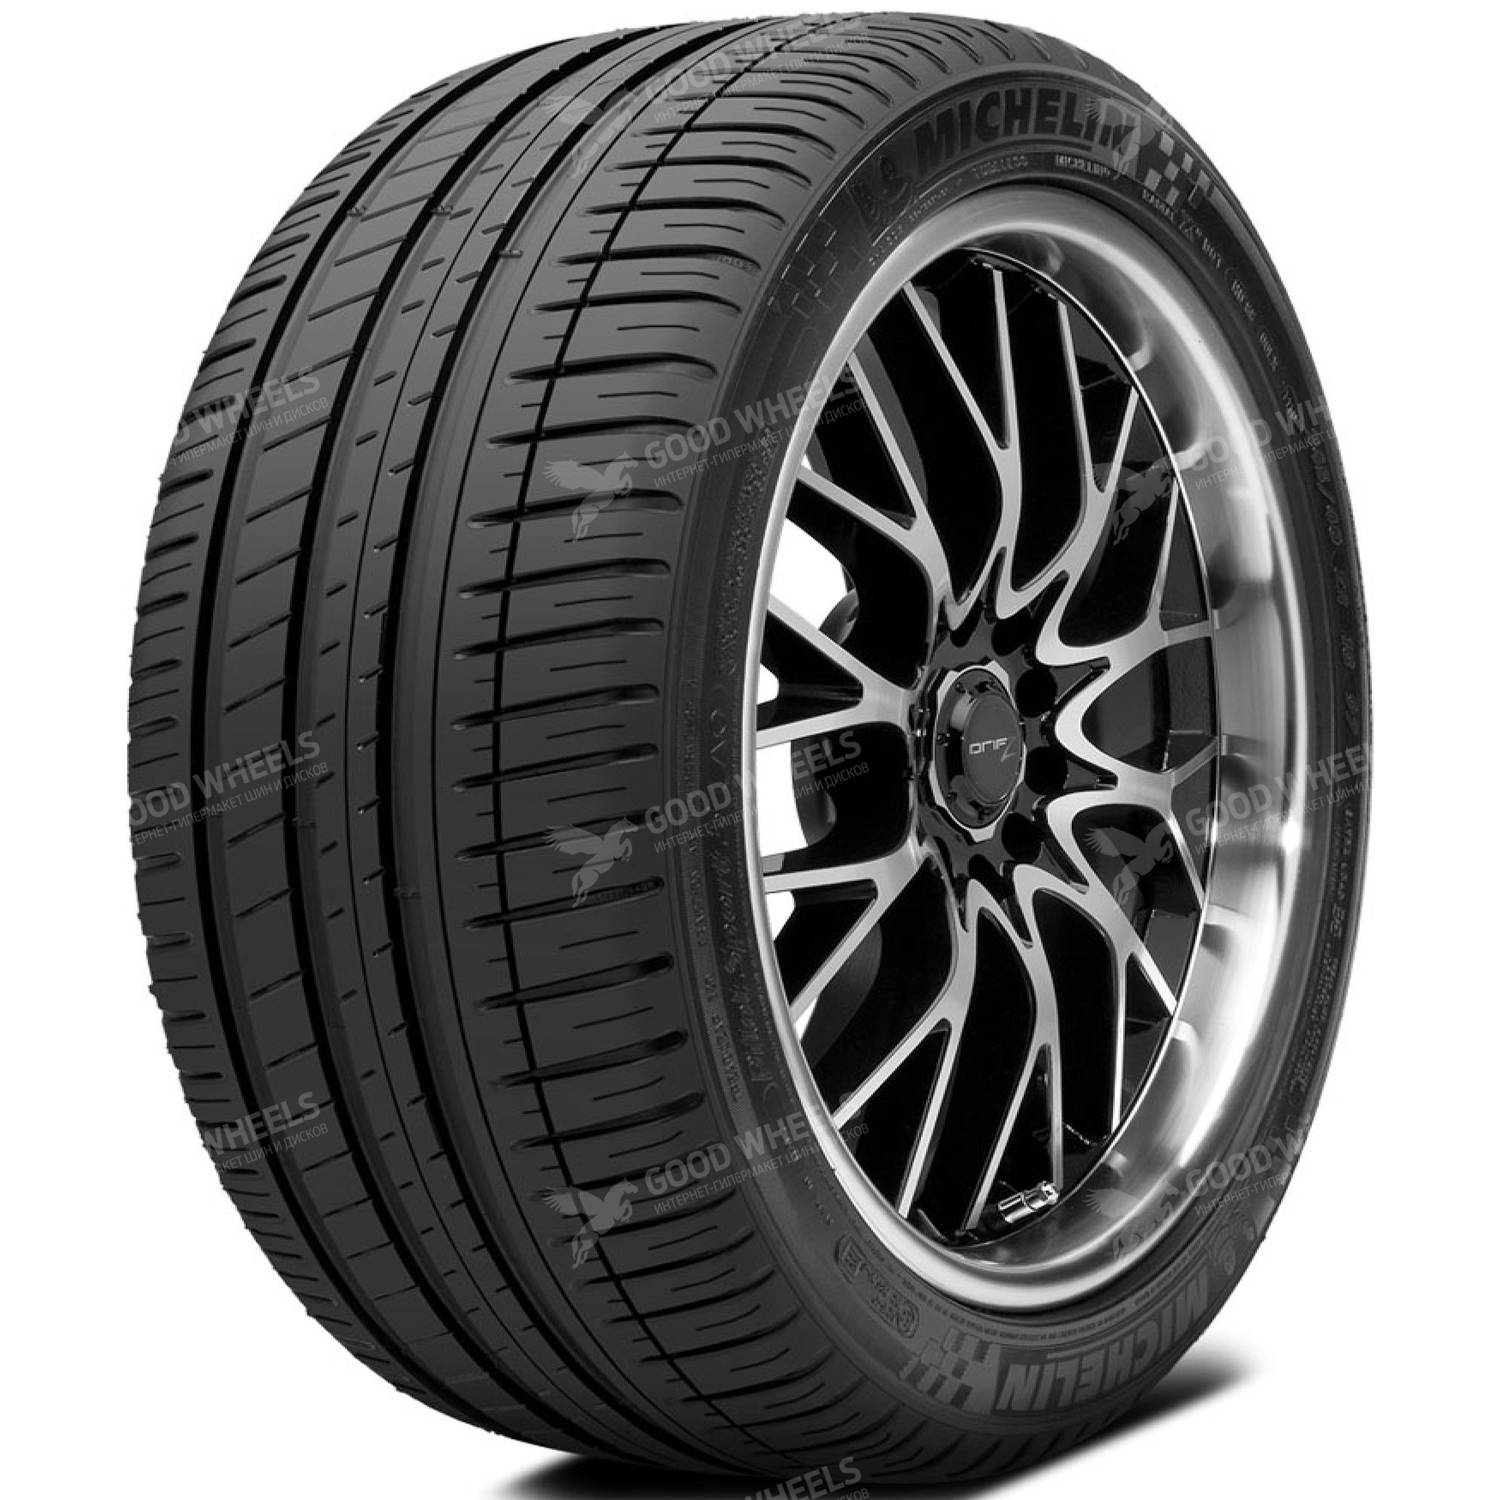 Michelin Pilot Sport 3 (PS3) 205/50 R17 93W